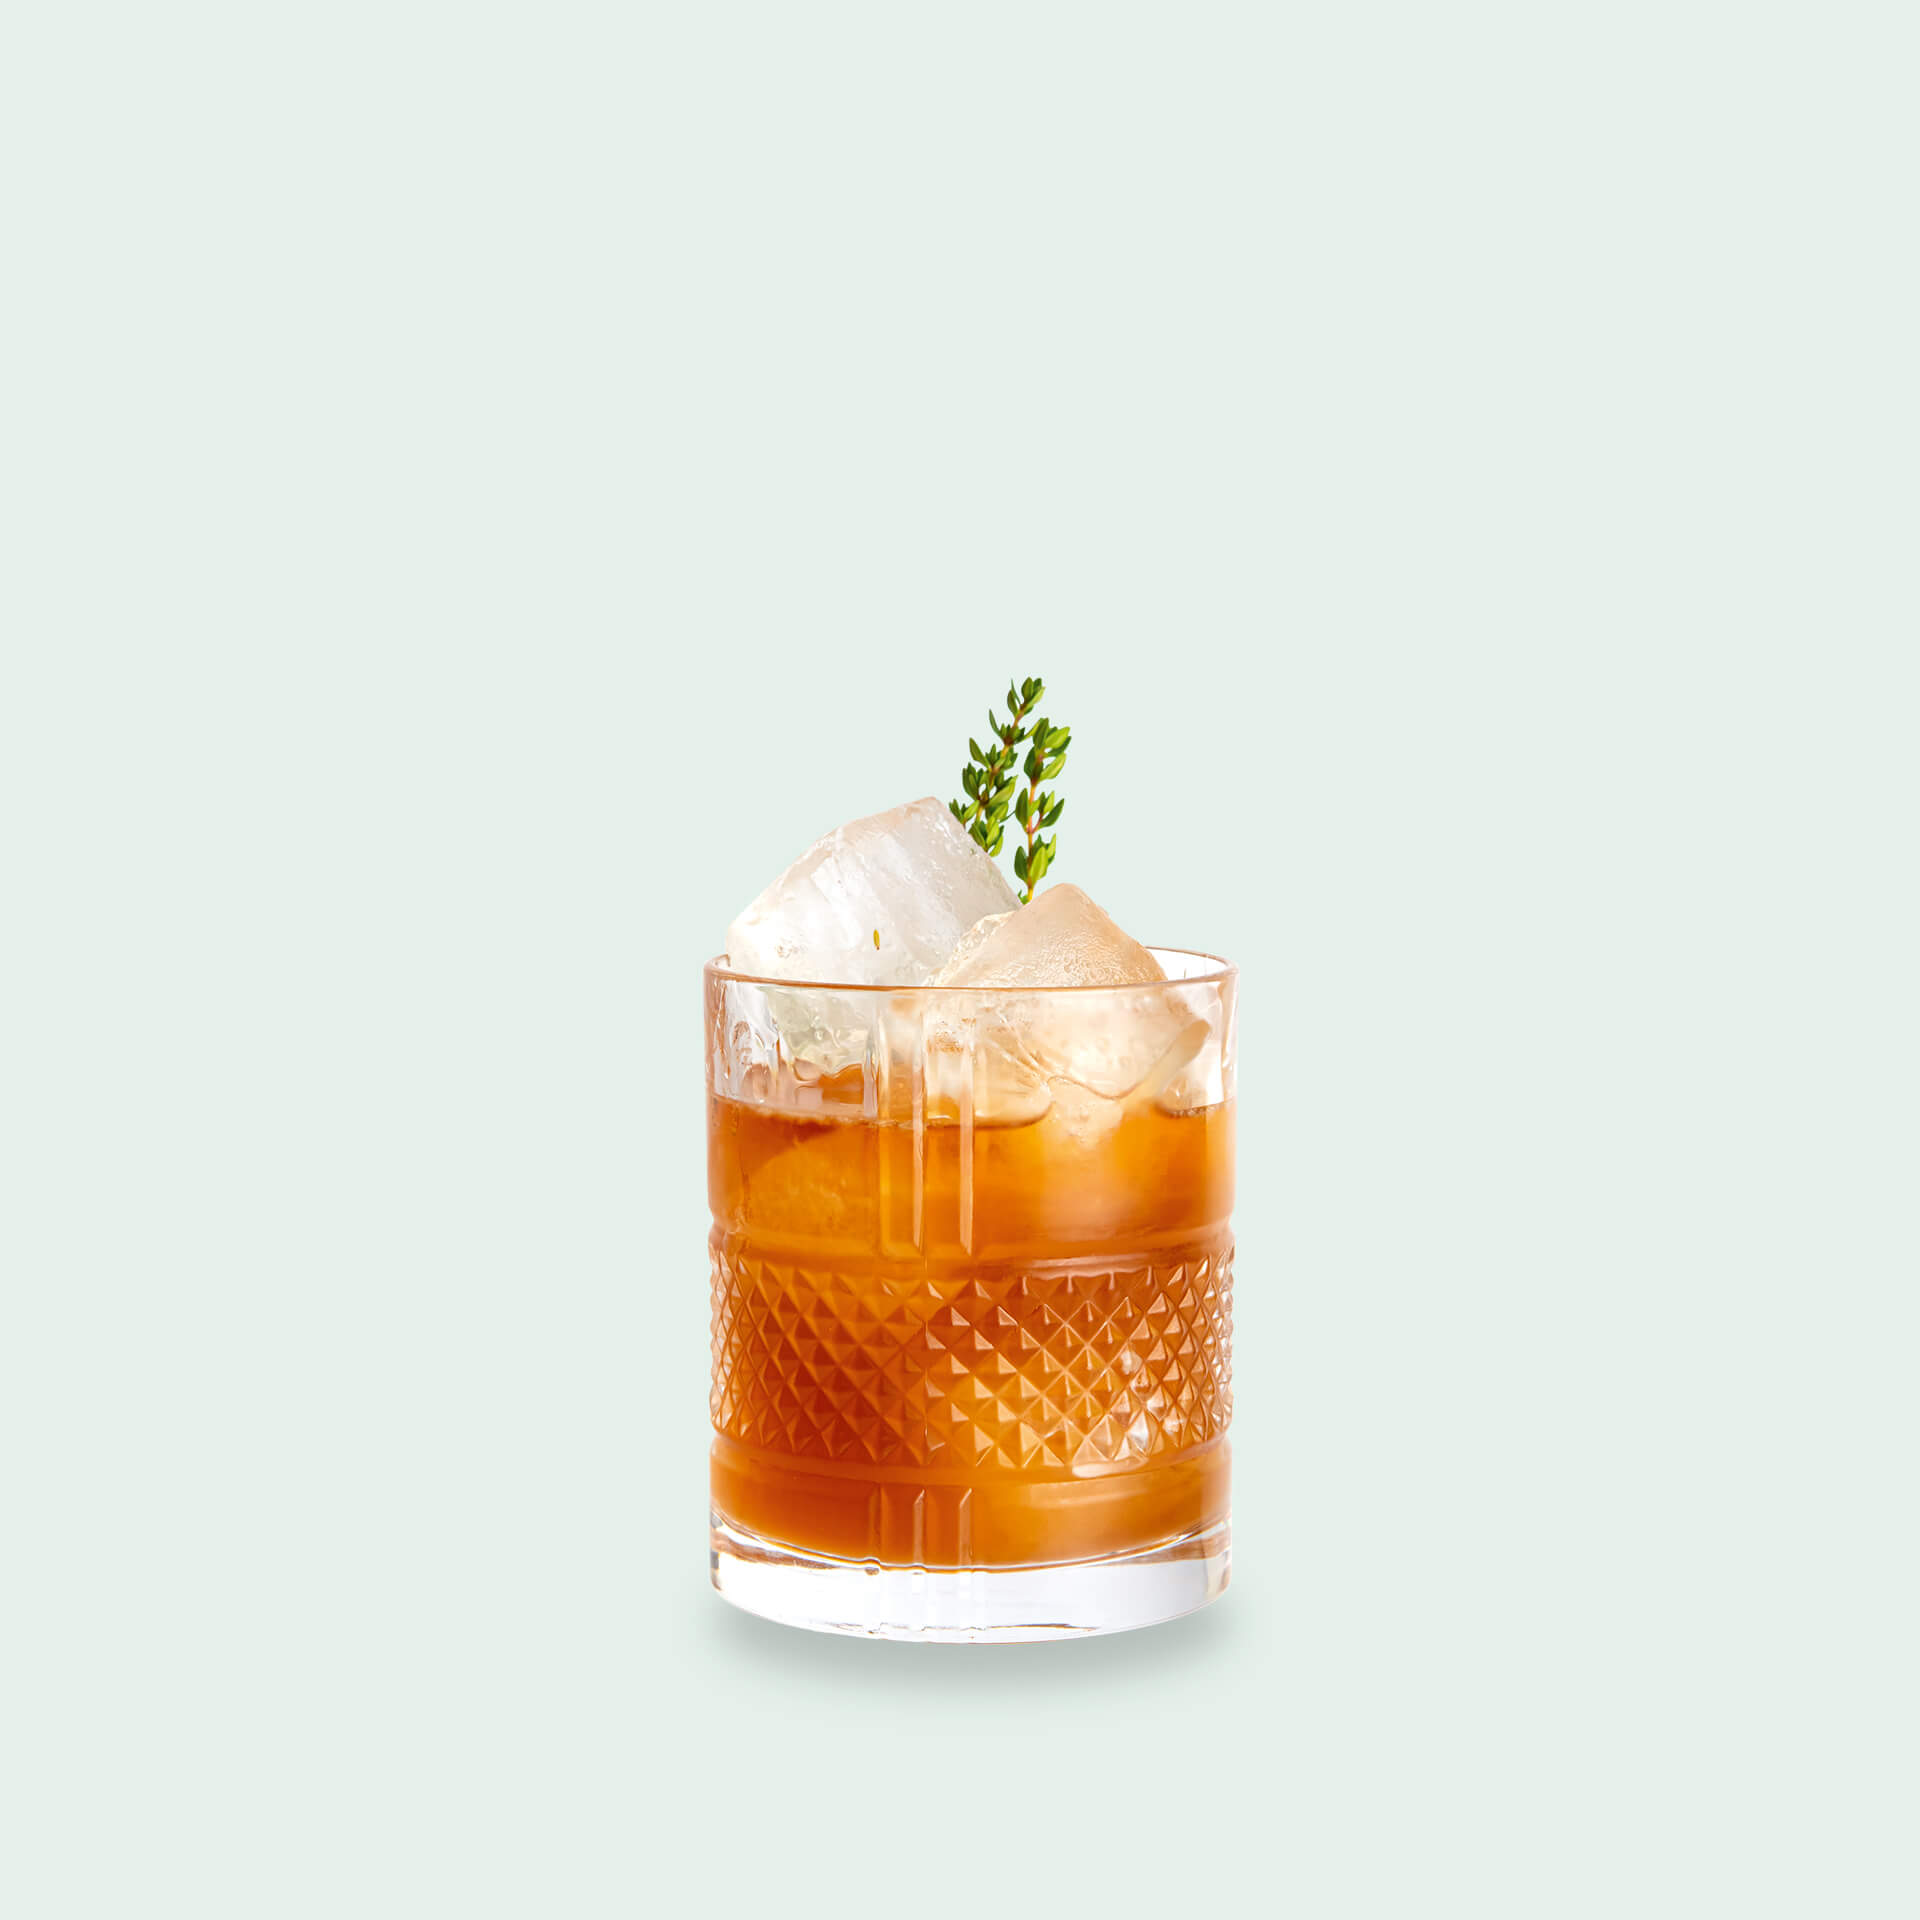 Whisky Cocktail Set von Drink Syndikat: Float me my lord